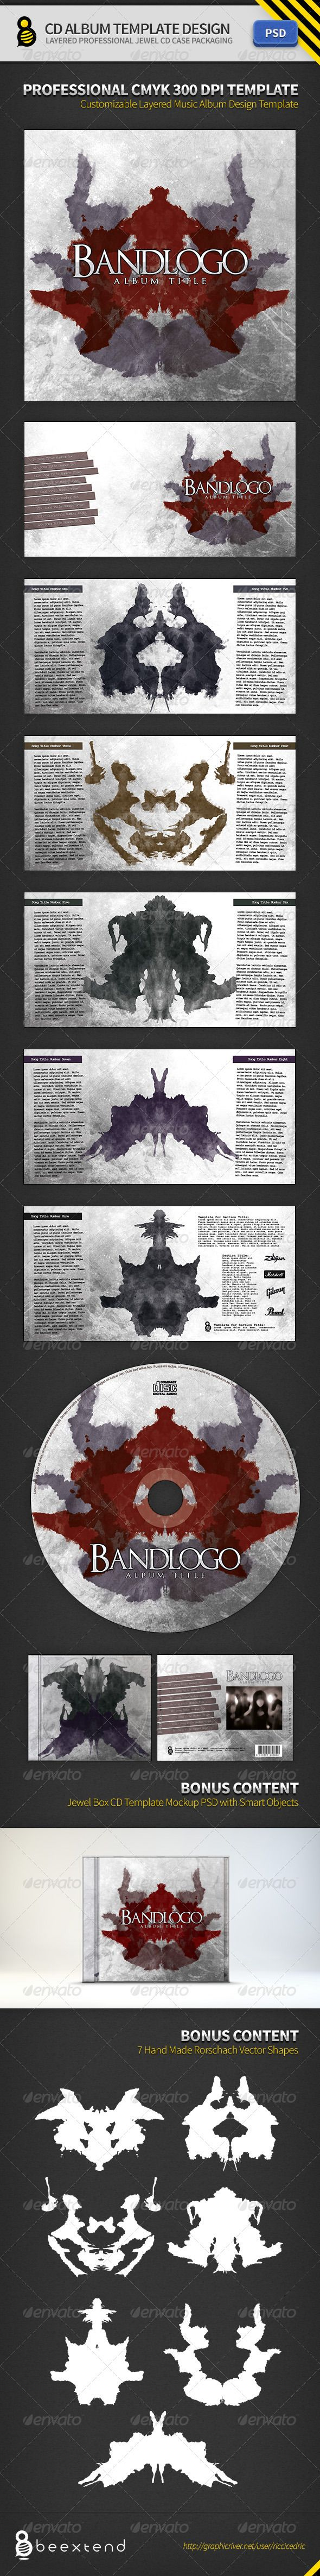 Cd Album Template Design Ii Graphicriver DonT Forget To Rate My